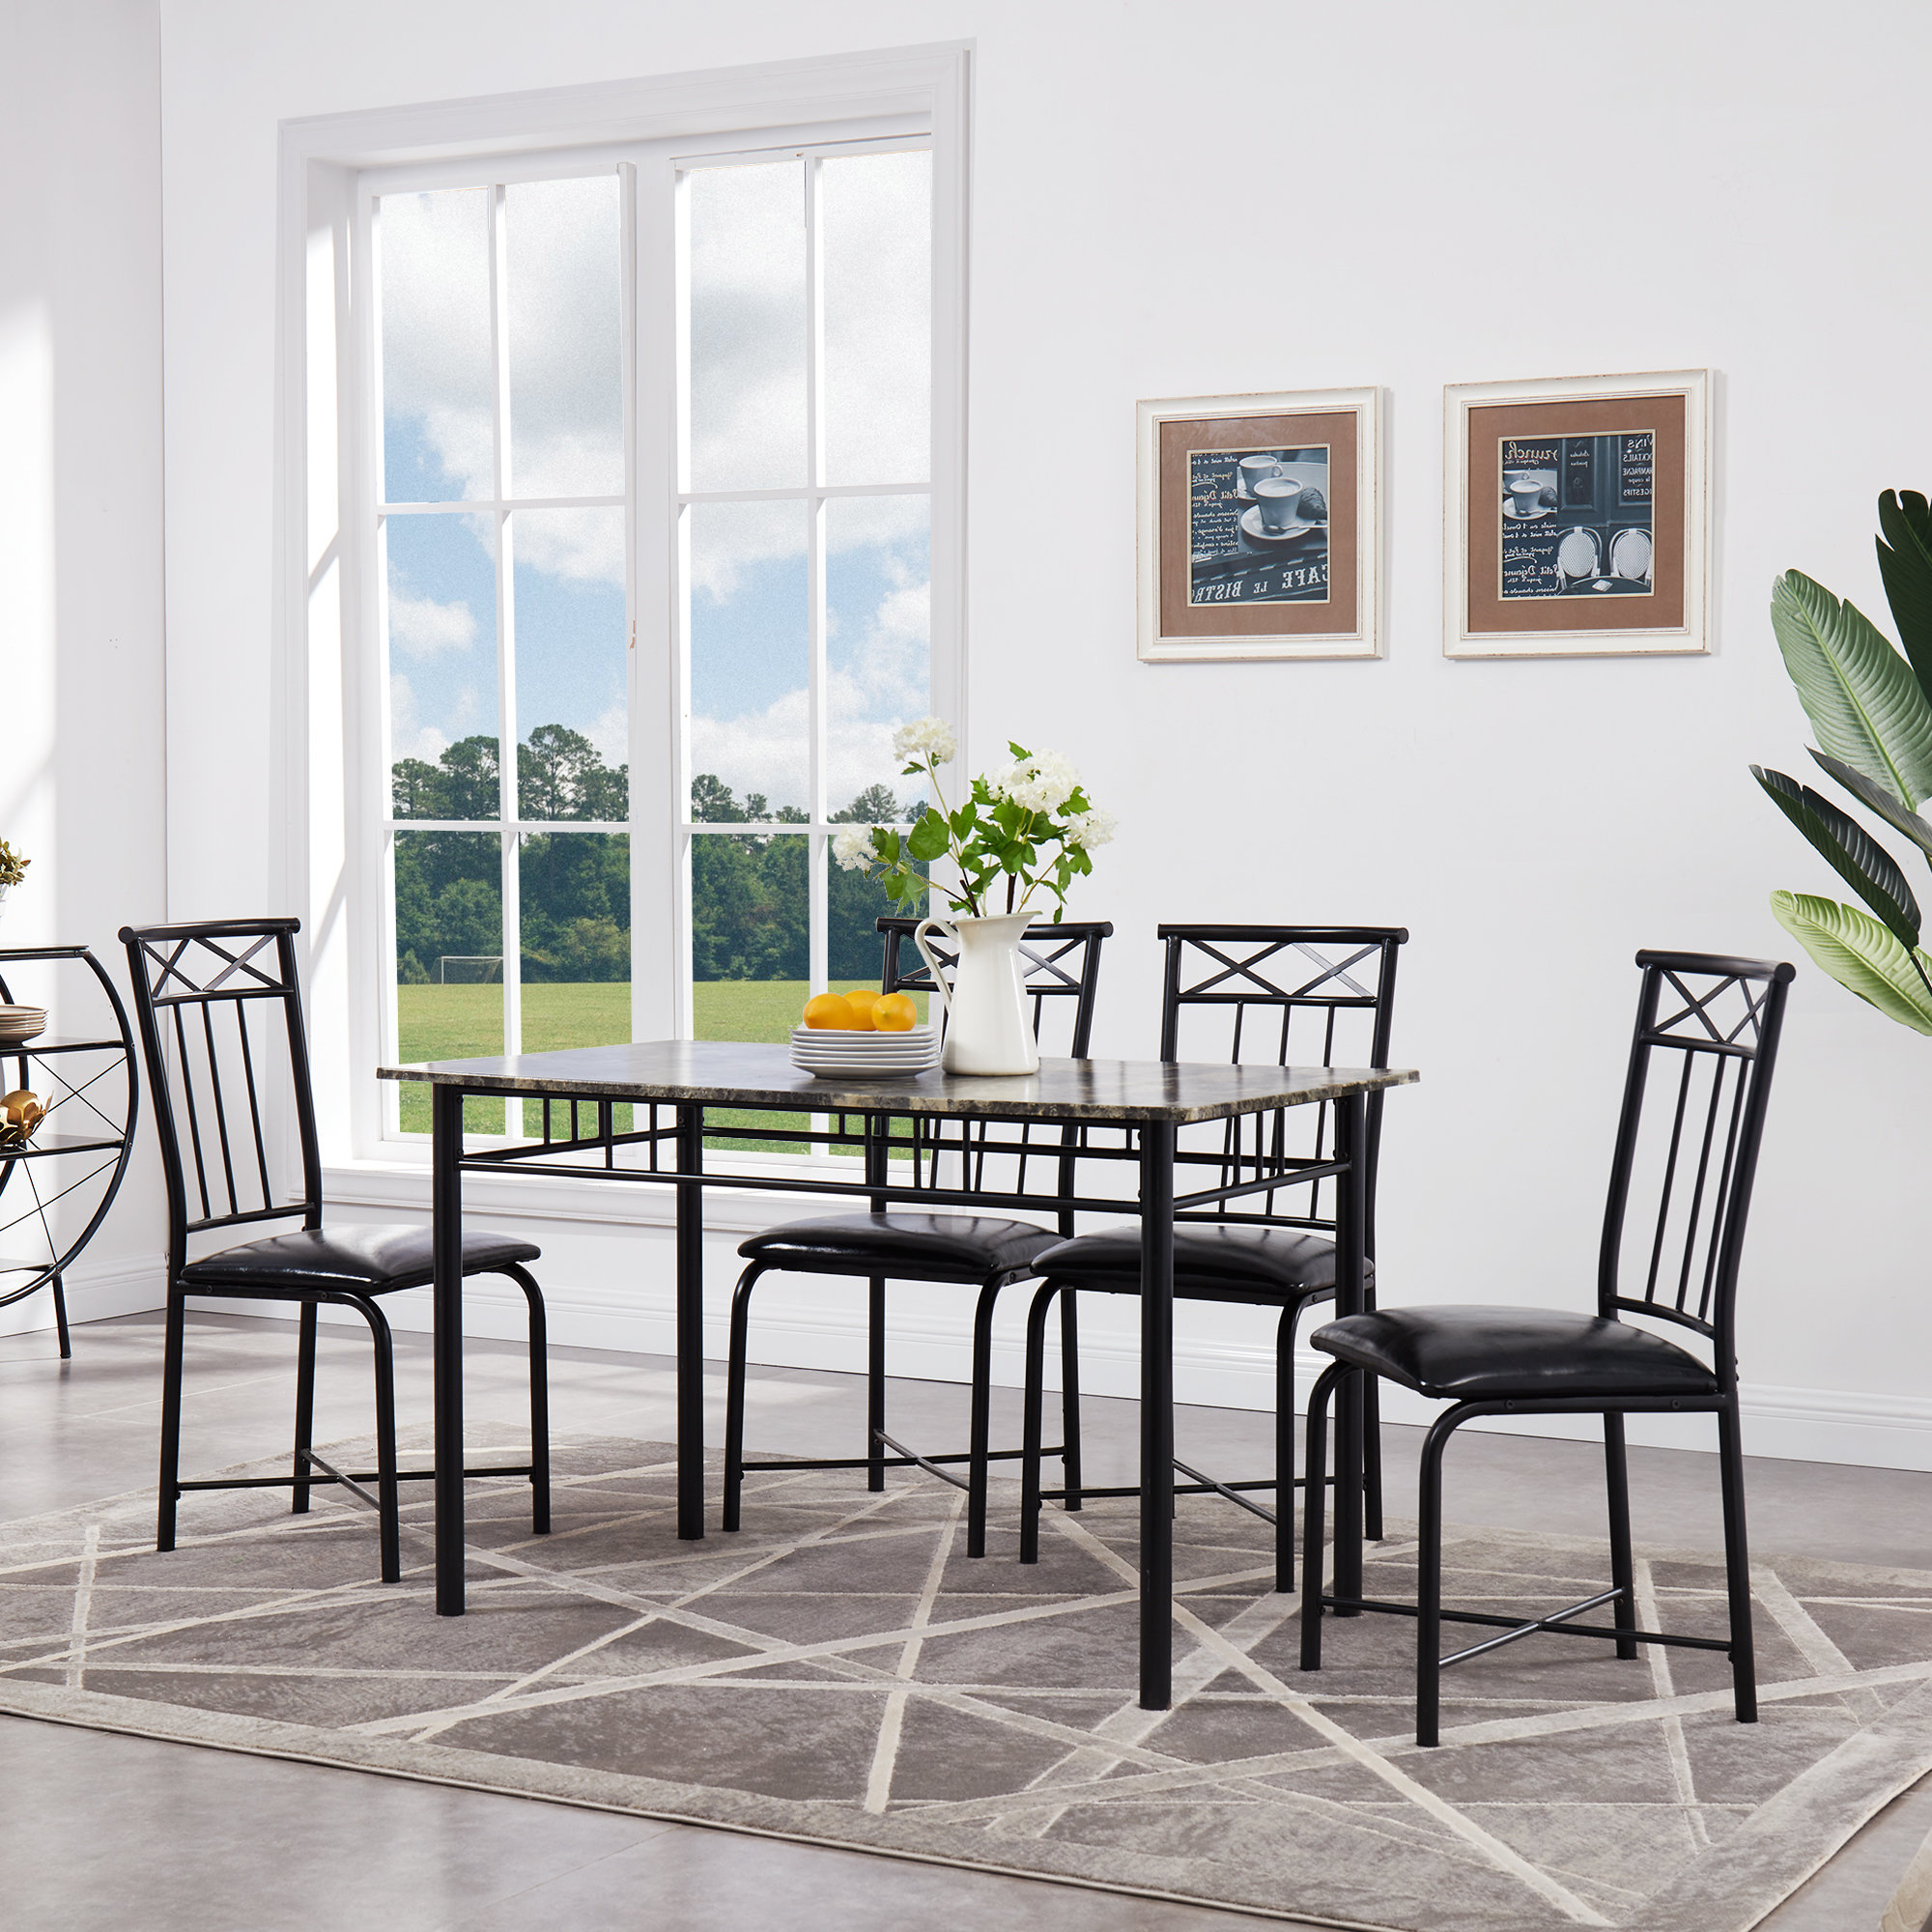 Reinert 5 Piece Dining Set Regarding Favorite Taulbee 5 Piece Dining Sets (View 11 of 20)